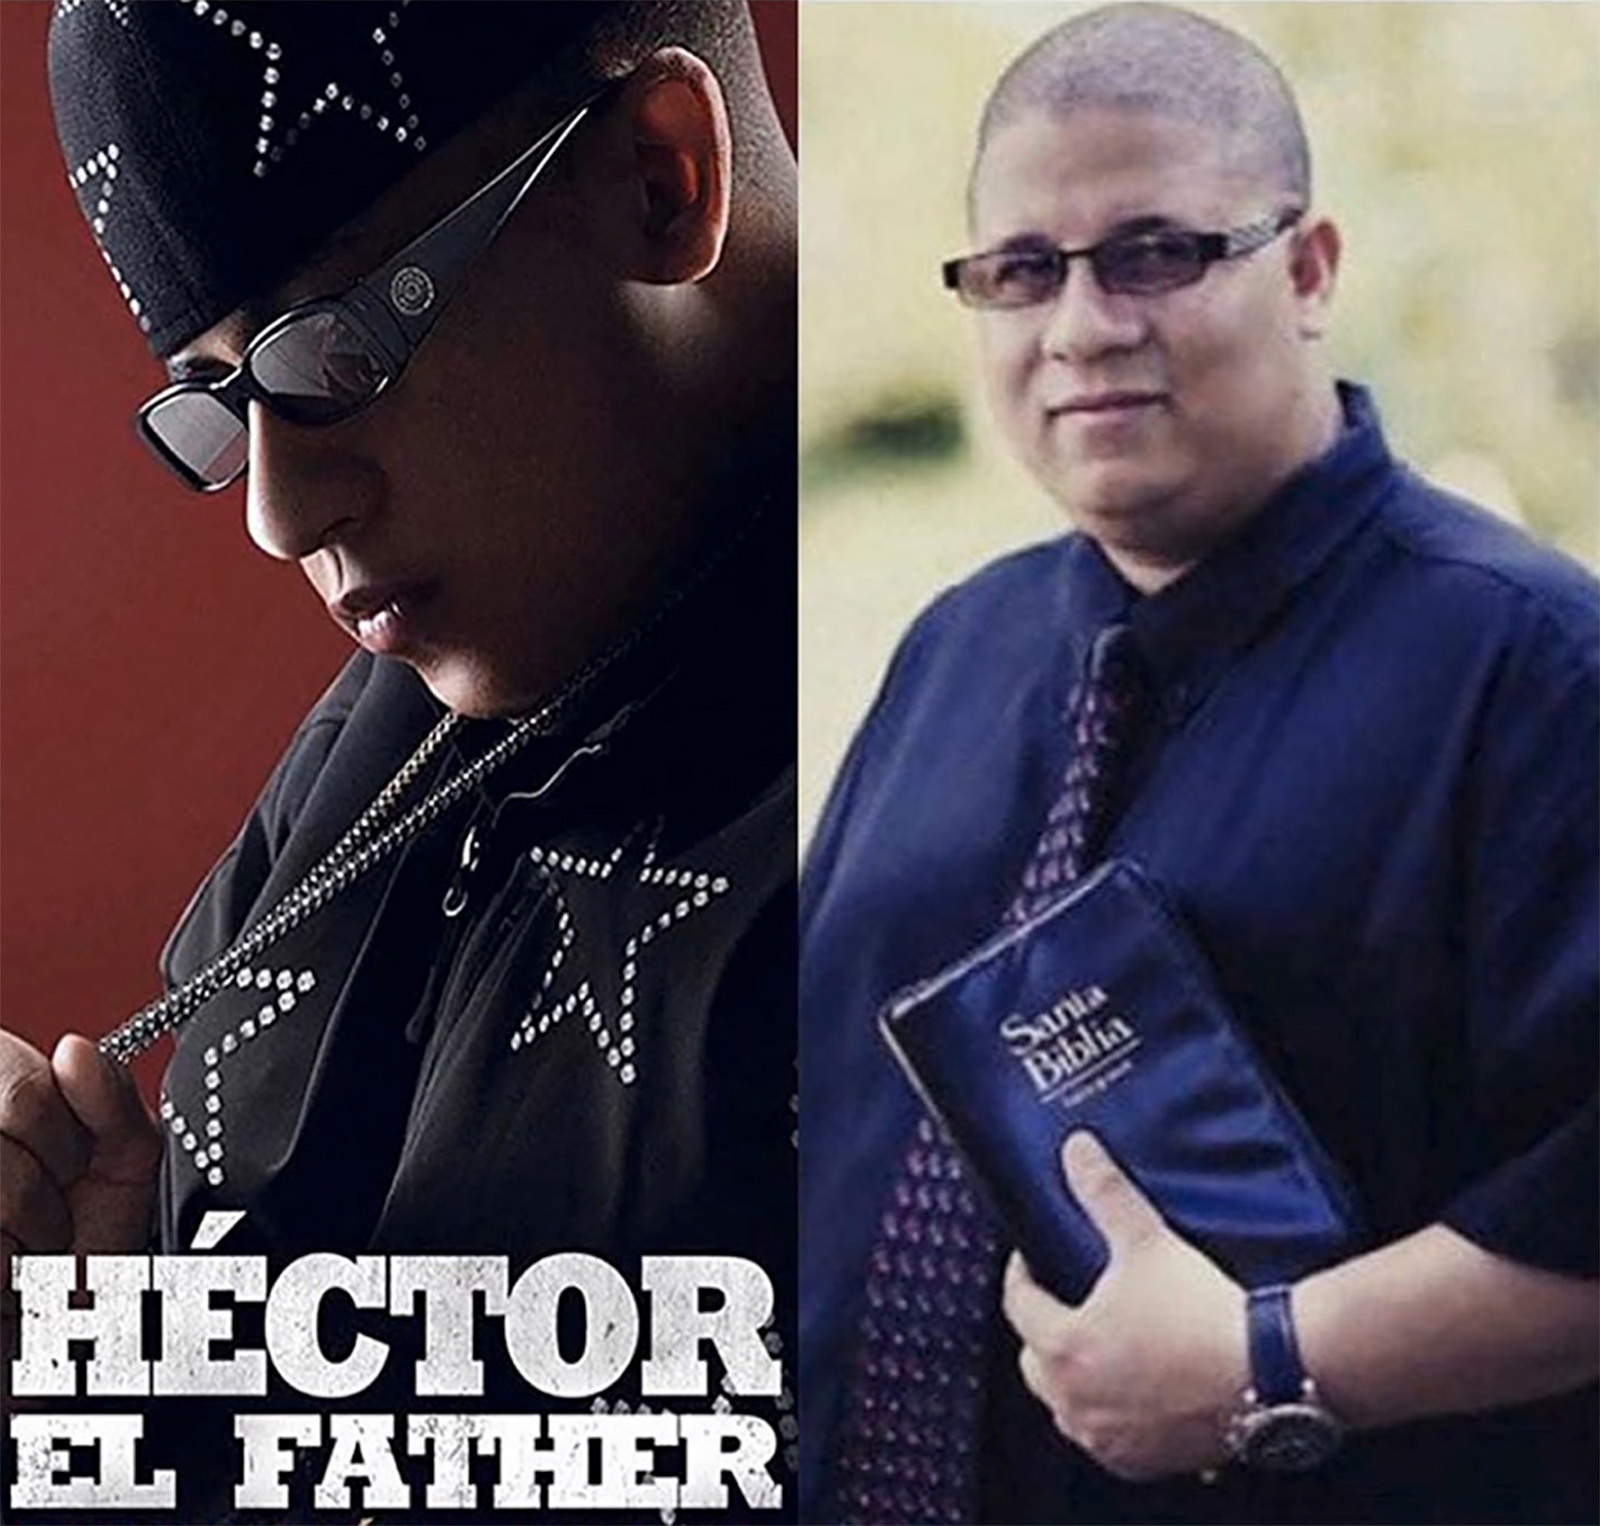 Héctor el Father